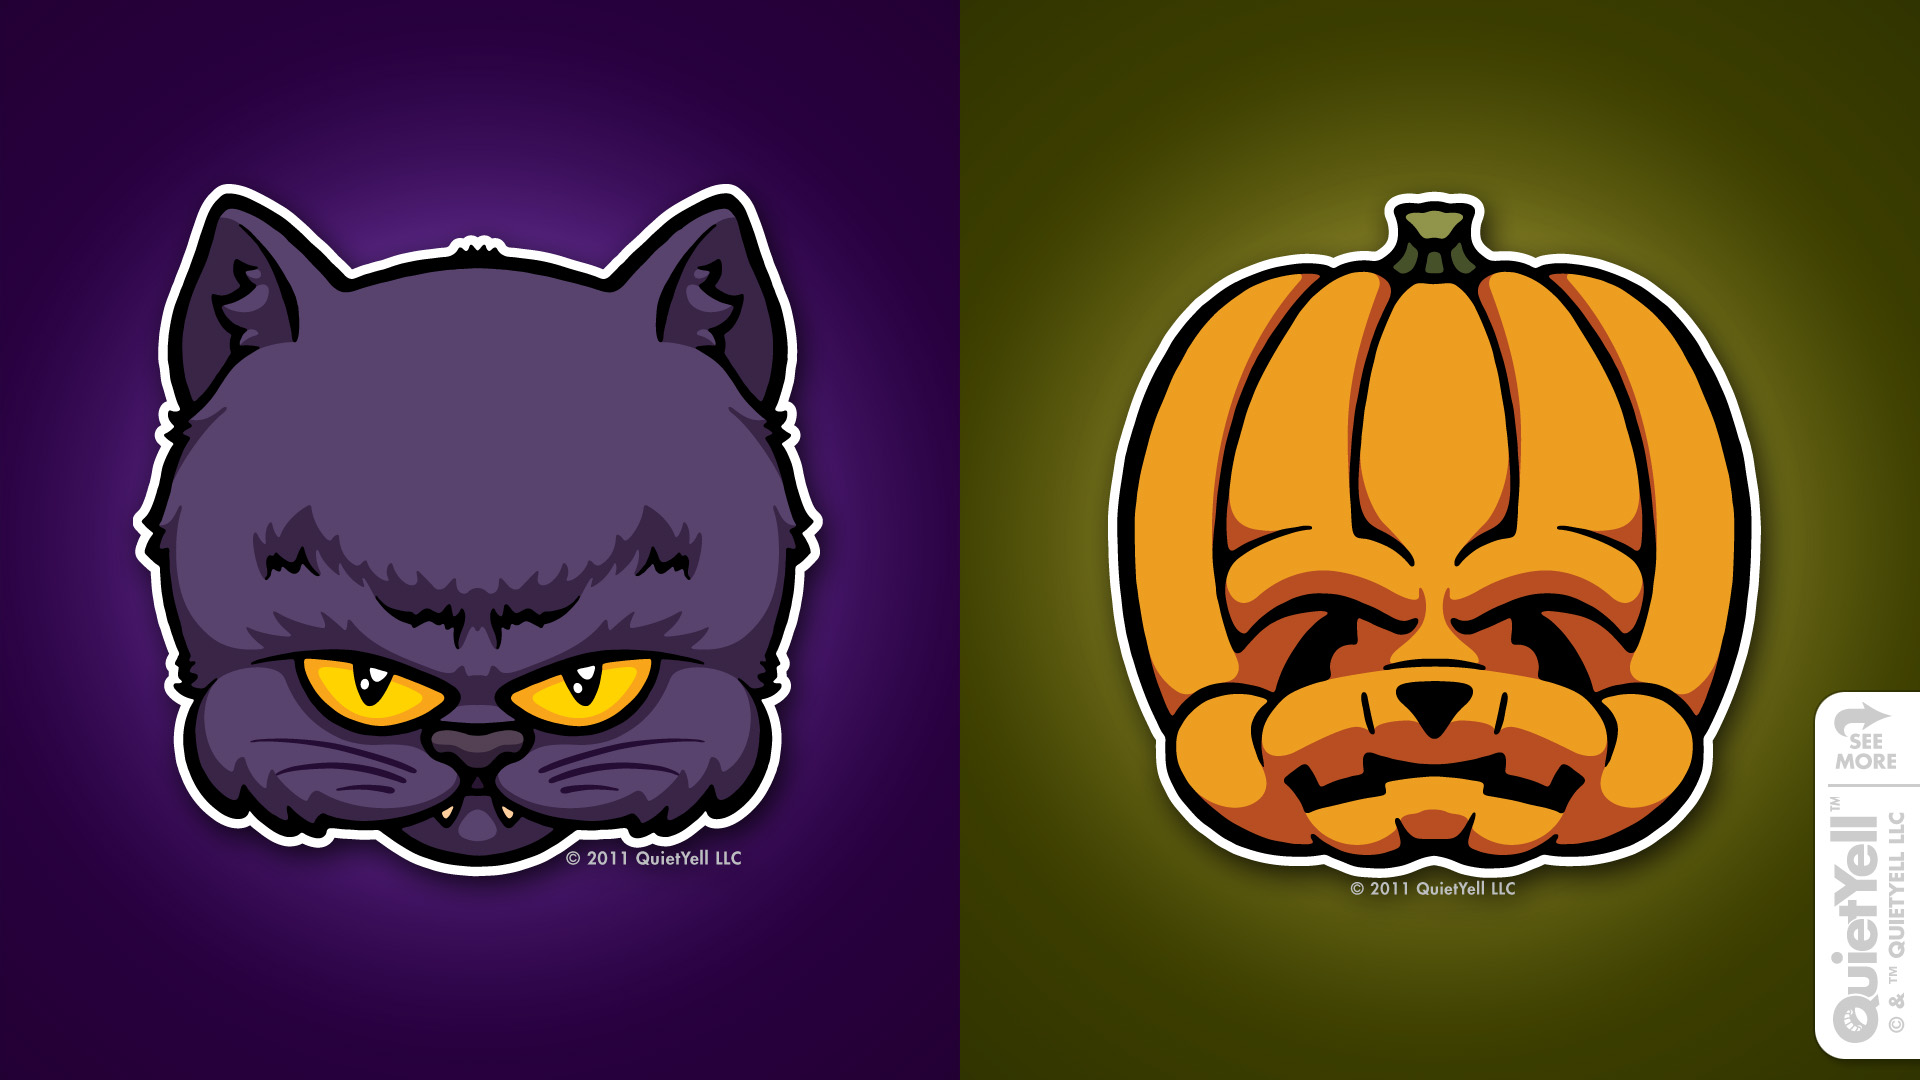 quietyell_illustration_full_monsterheads2011_blackcatjackolantern_01